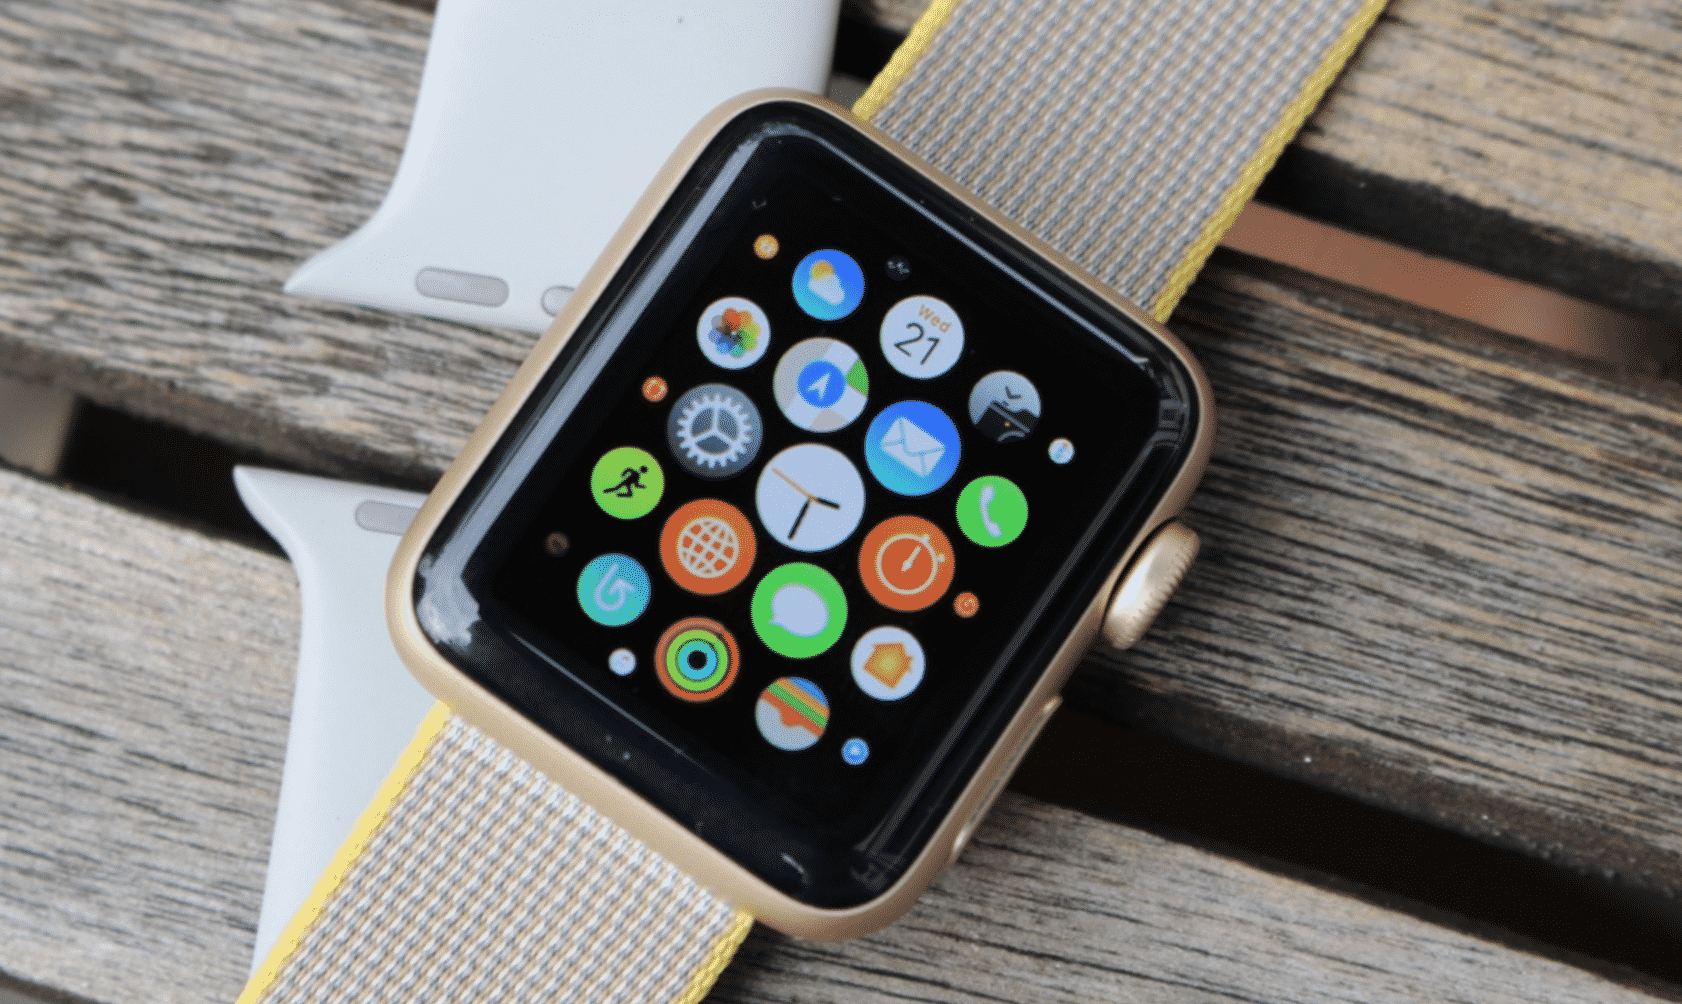 Should you buy an Apple Watch Series 2